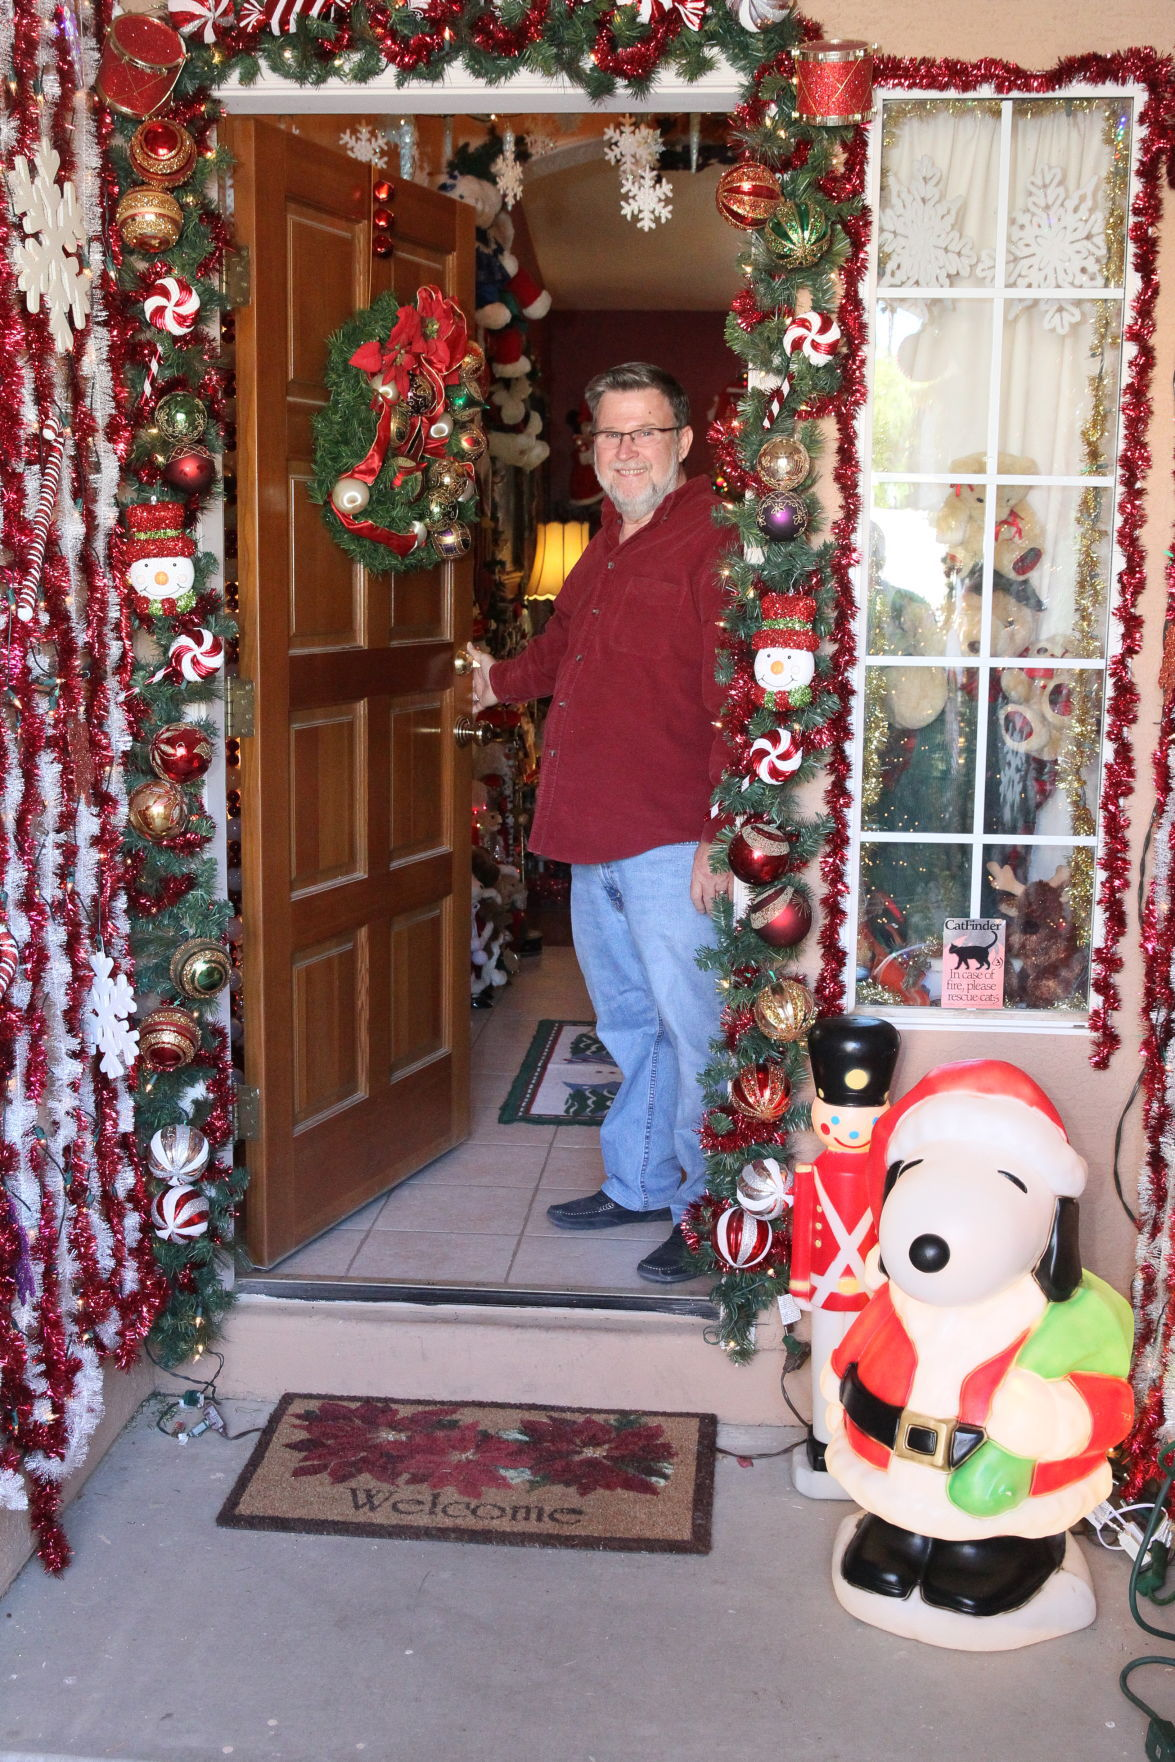 Jim Simpson will be wearing a Santa suit when he opens the door of his home at 2313 E. Taxidea Way, Ahwatukee, from 6 to 9 p.m. Dec. 21 so the public can view his Christmas collection.